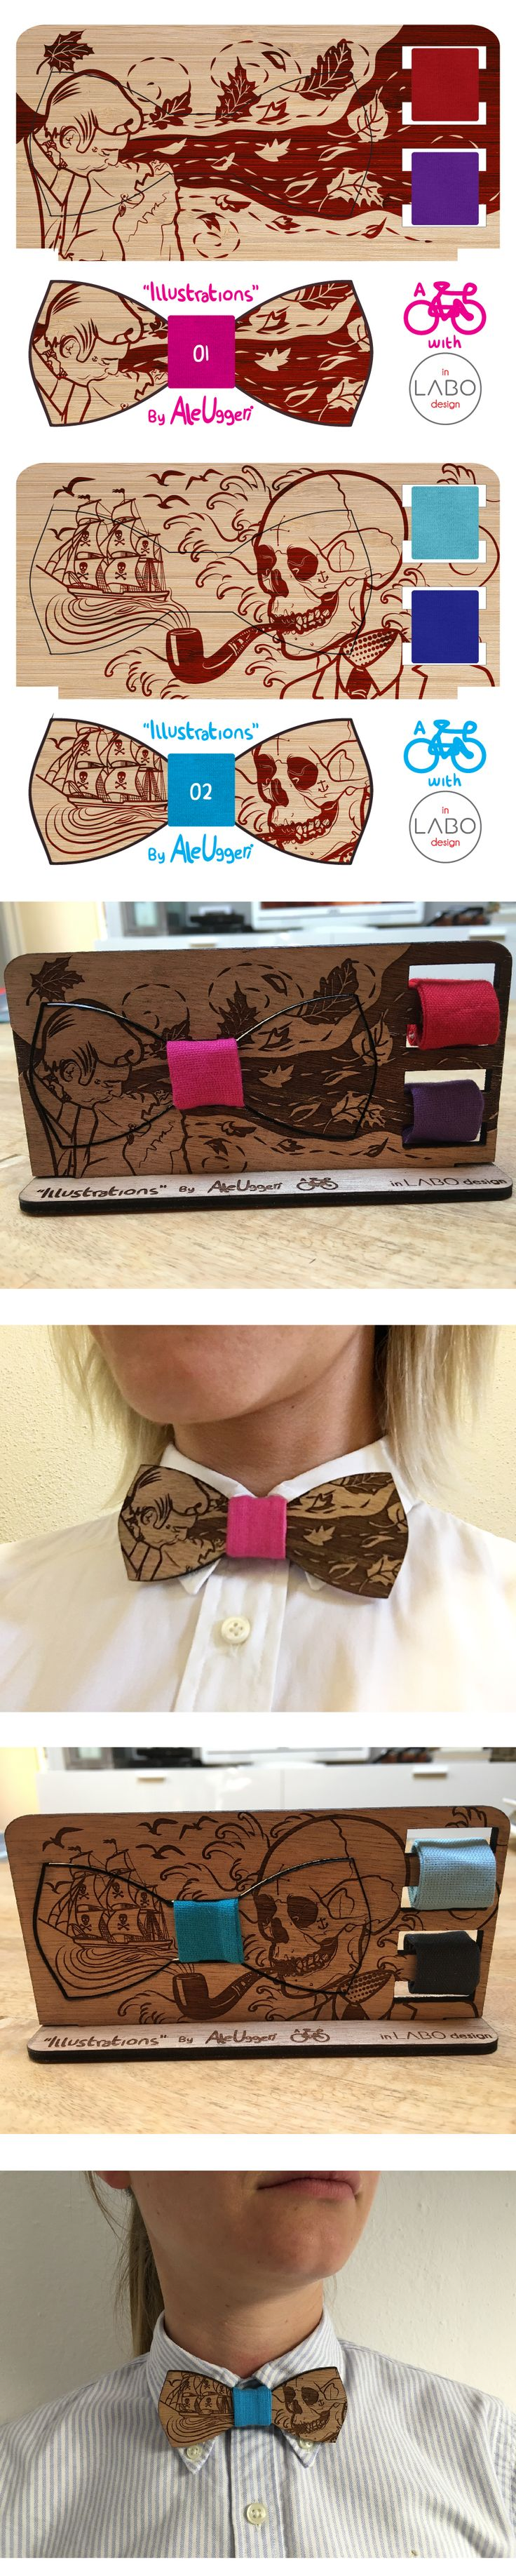 """ILLUSTRATIONS"" by Aleuggeri & InLabodesign  Set of 10 wooden illustrated papillon.  Wooden Bowties #1 #2"